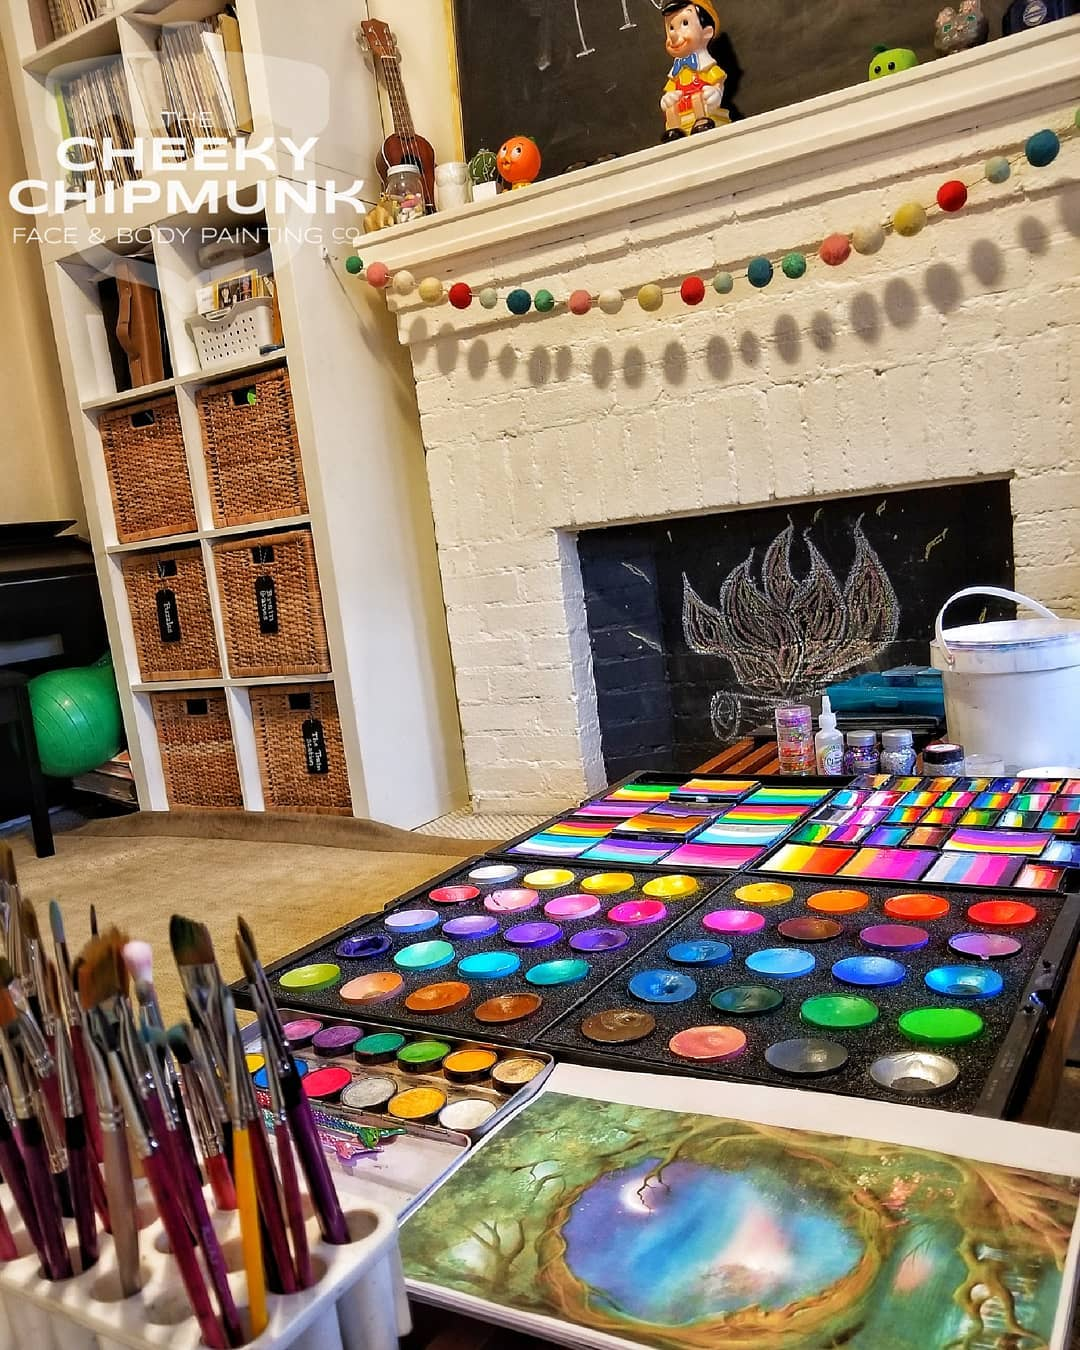 lenore-koppelman-the-cheeky-chipmunk-studio-living-room-body-painting-belly-painting-fab-makeup-face-painting-kit-private-appointment-paintbrushes-fireplace-astoria-queens-nyc.jpg